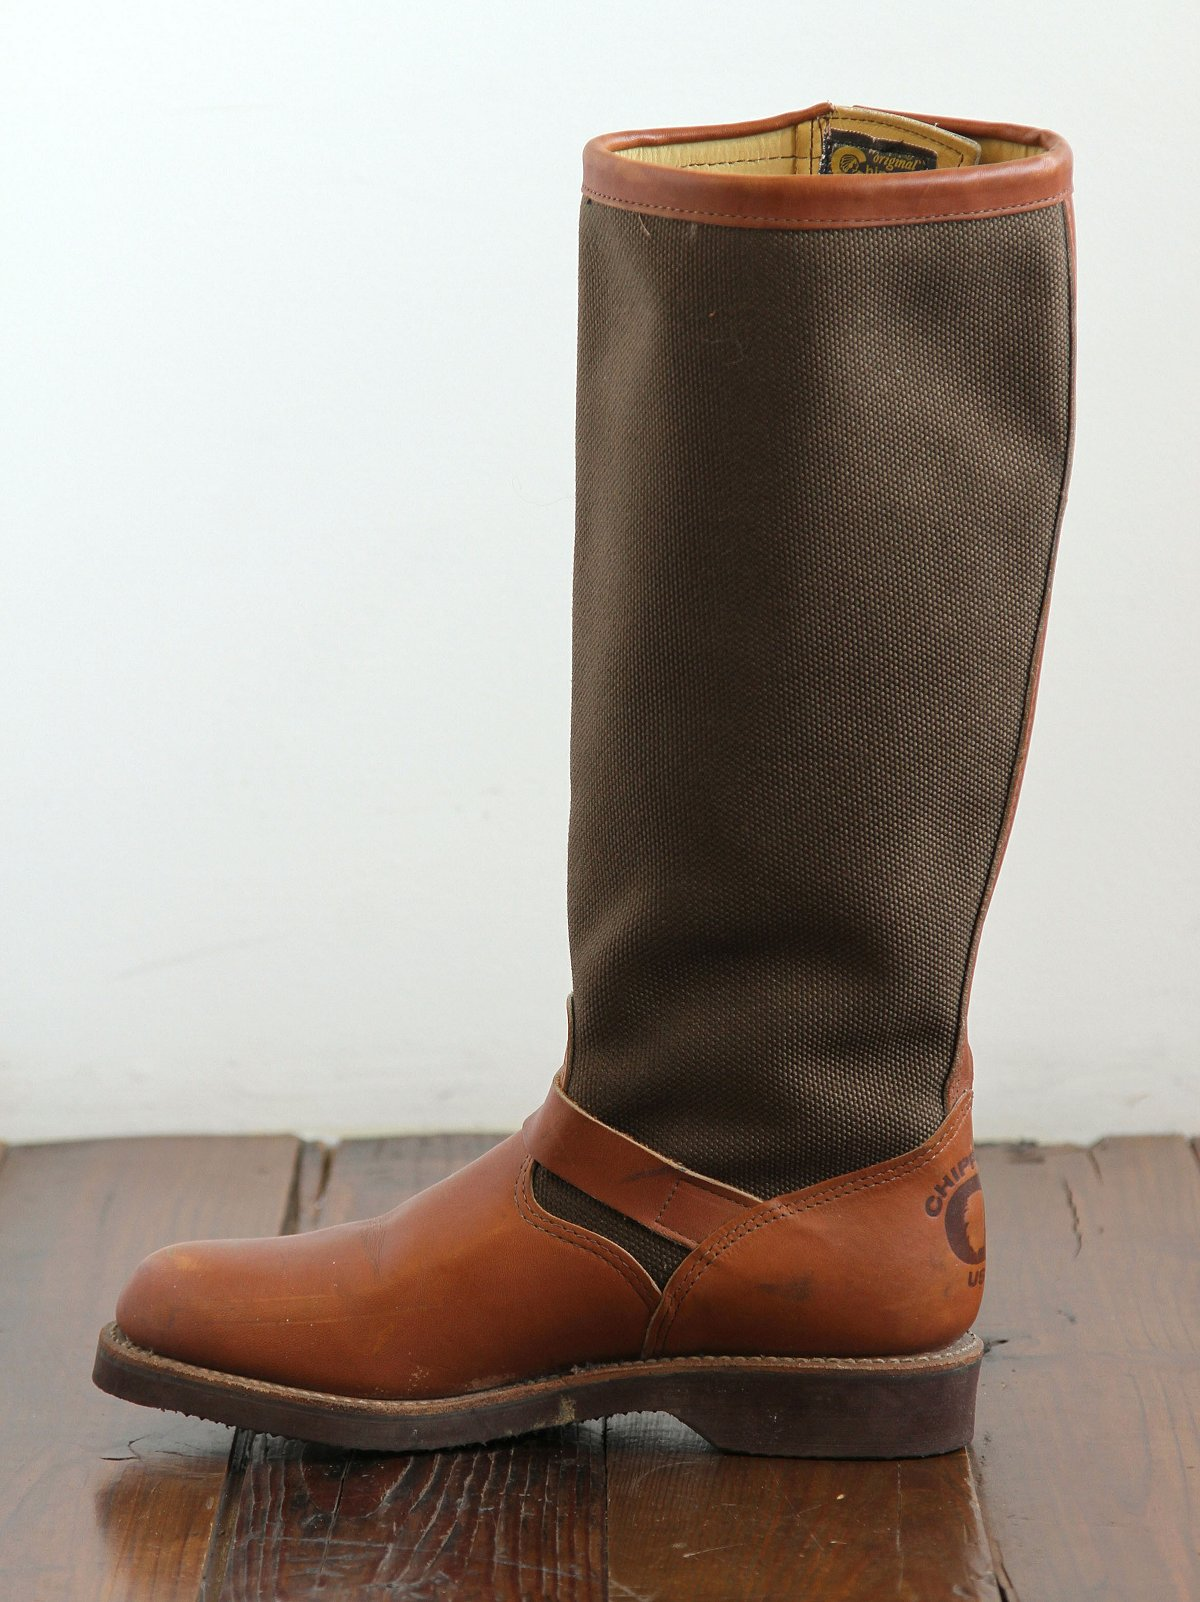 Vintage Canvas and Leather Tall Boots